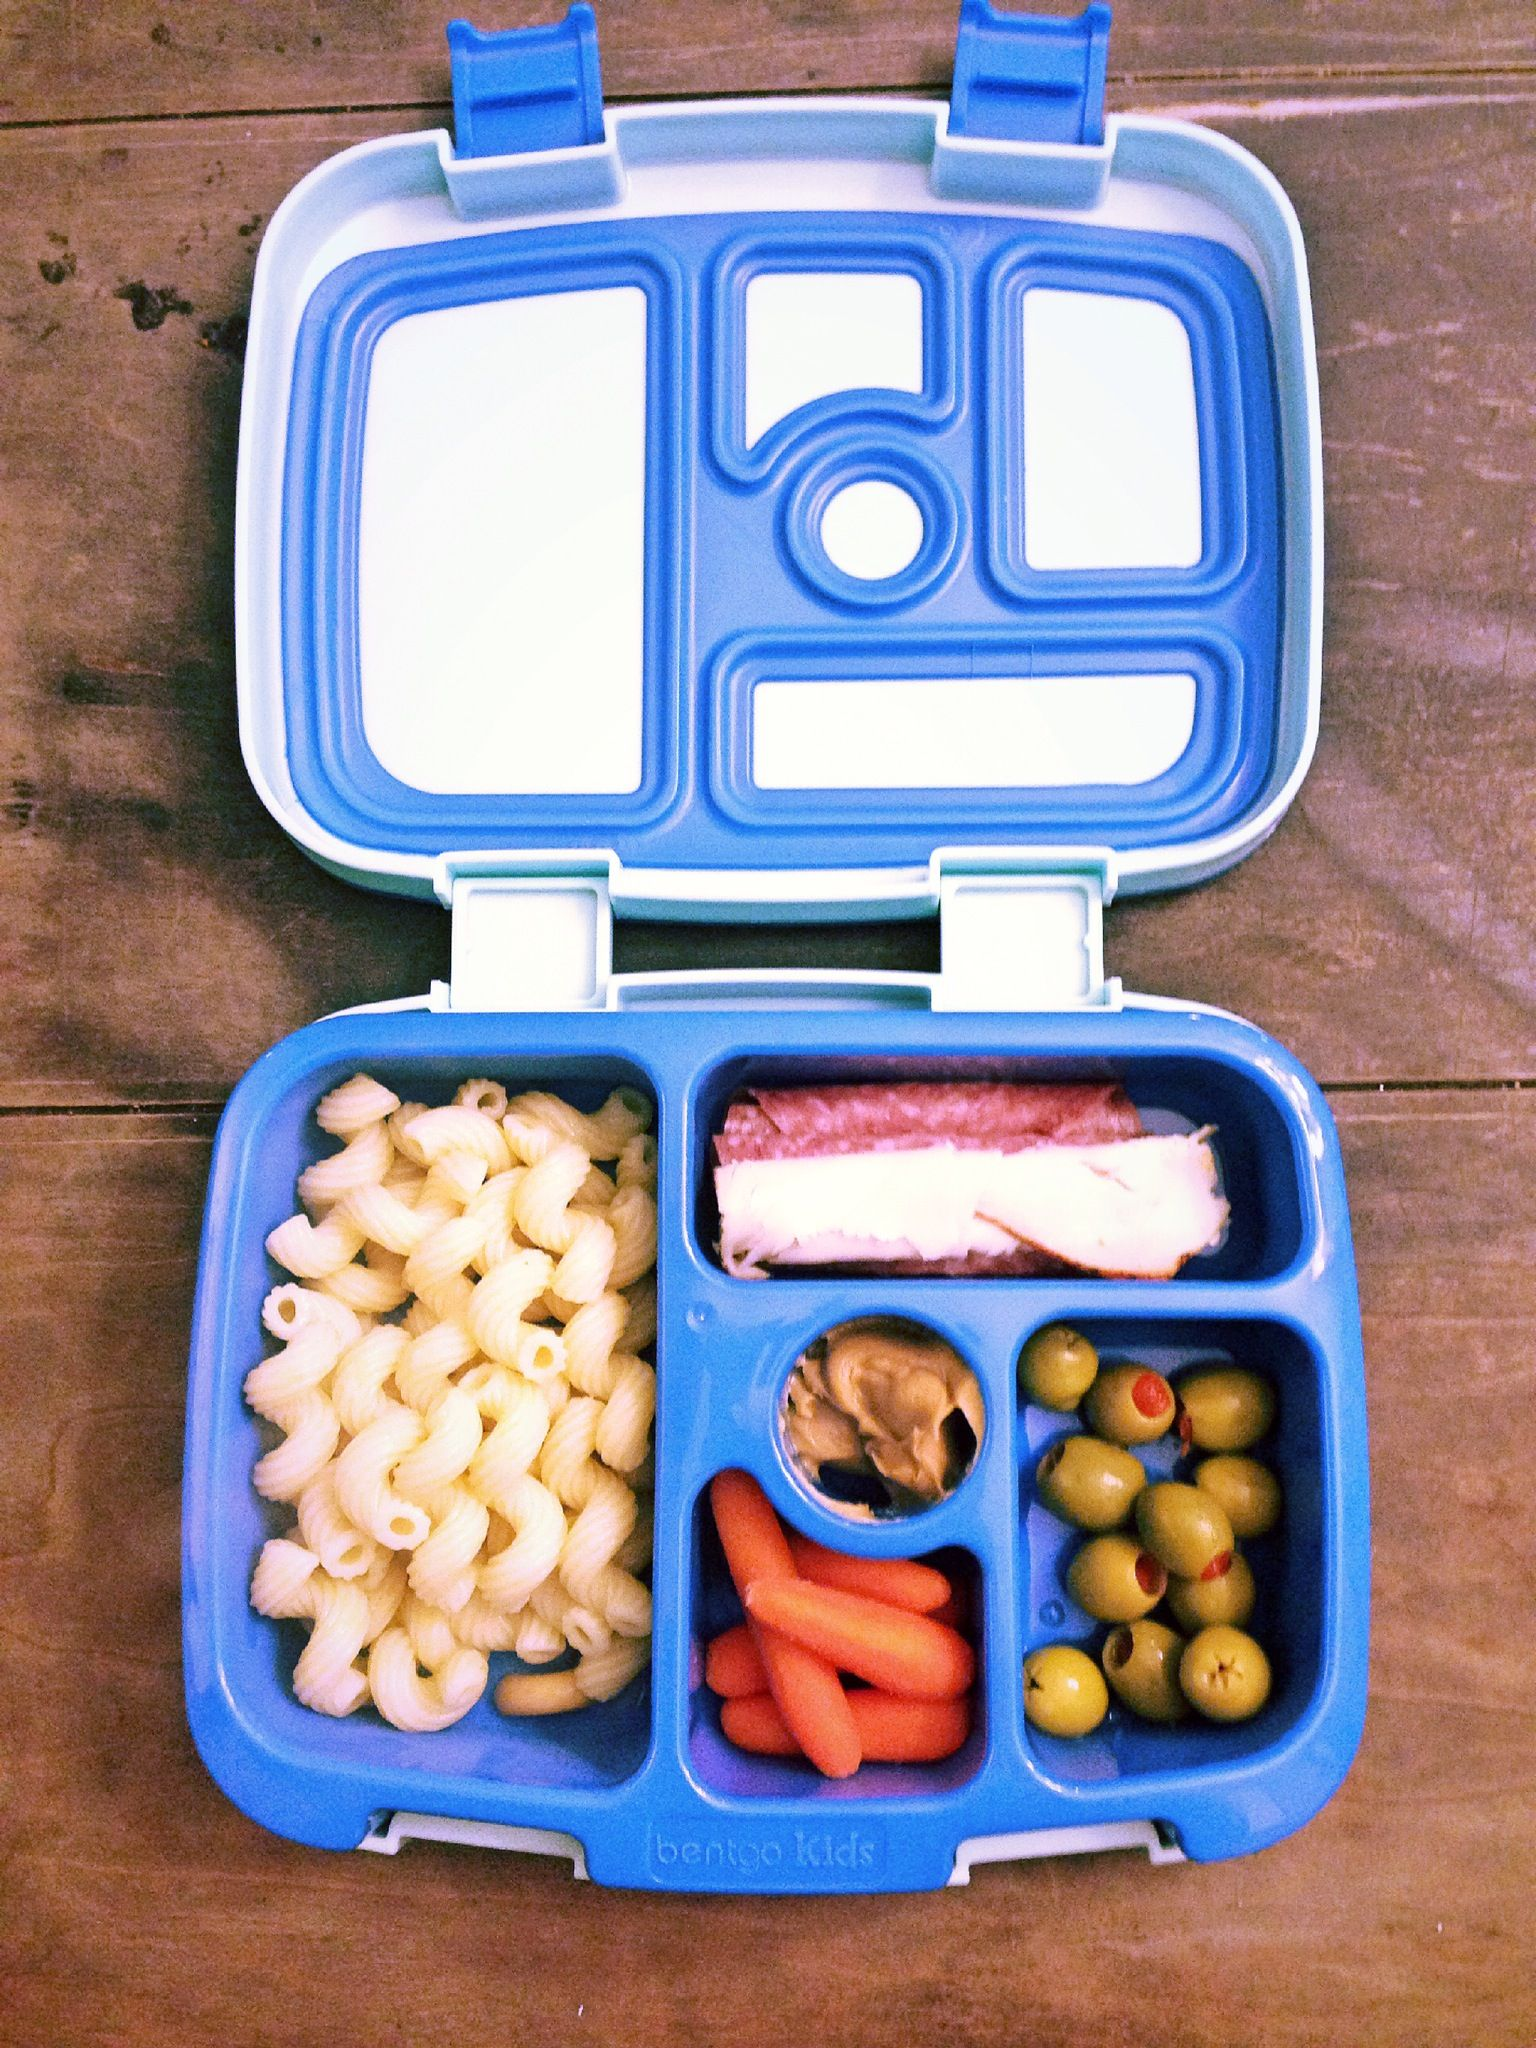 bentgo kids lunch box ideas from fit kids playground bento kidslunchbox this looks like the. Black Bedroom Furniture Sets. Home Design Ideas